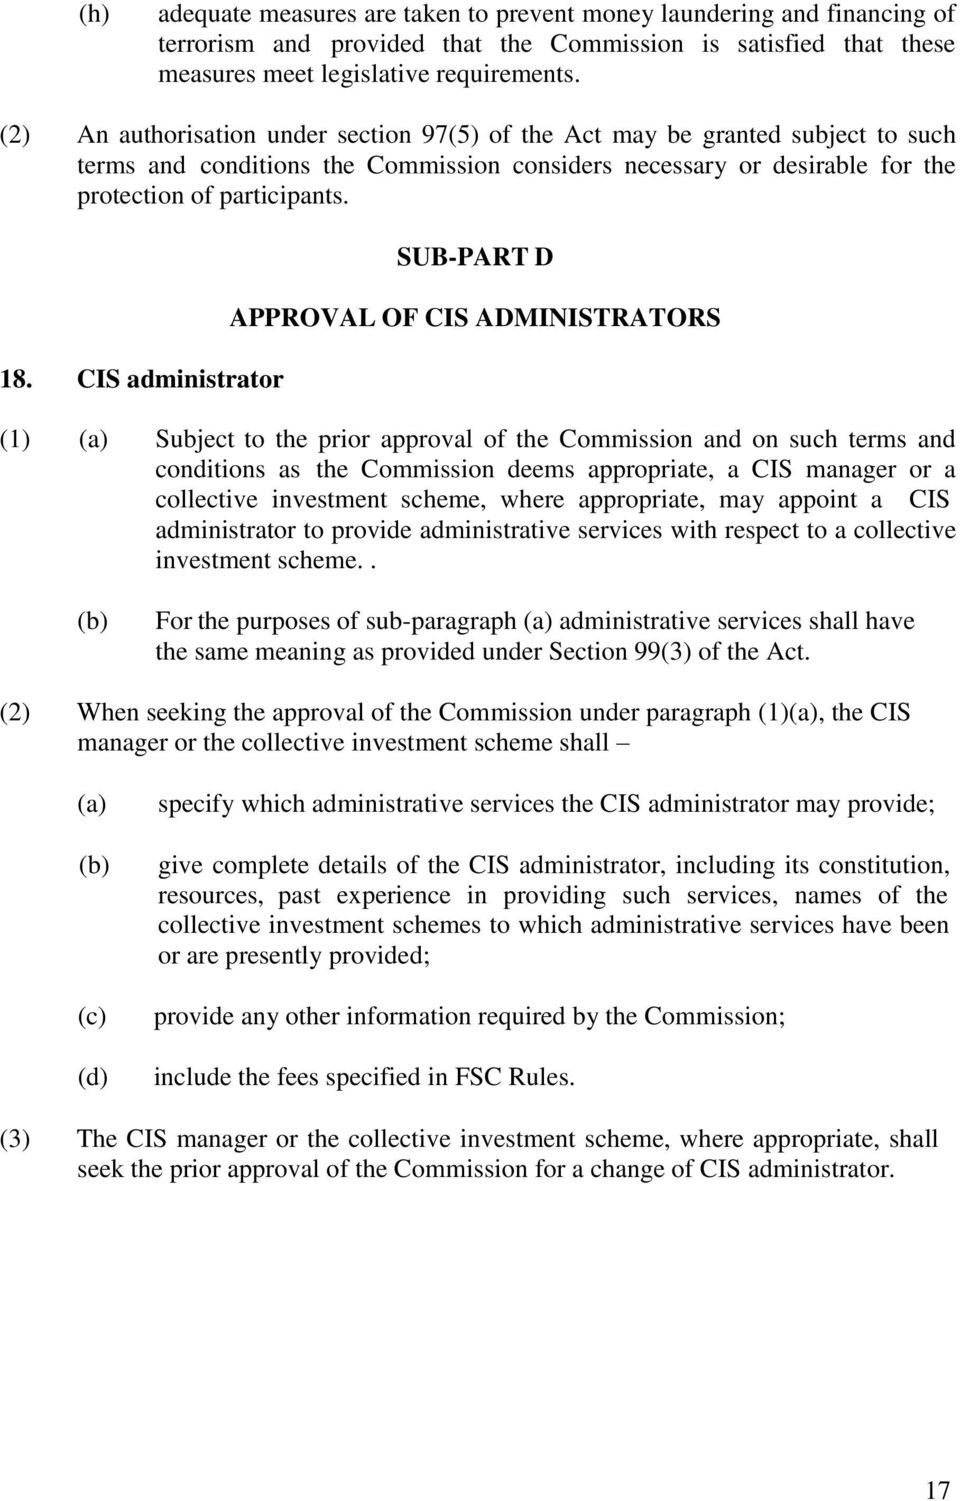 CIS administrator SUB-PART D APPROVAL OF CIS ADMINISTRATORS (1) Subject to the prior approval of the Commission and on such terms and conditions as the Commission deems appropriate, a CIS manager or